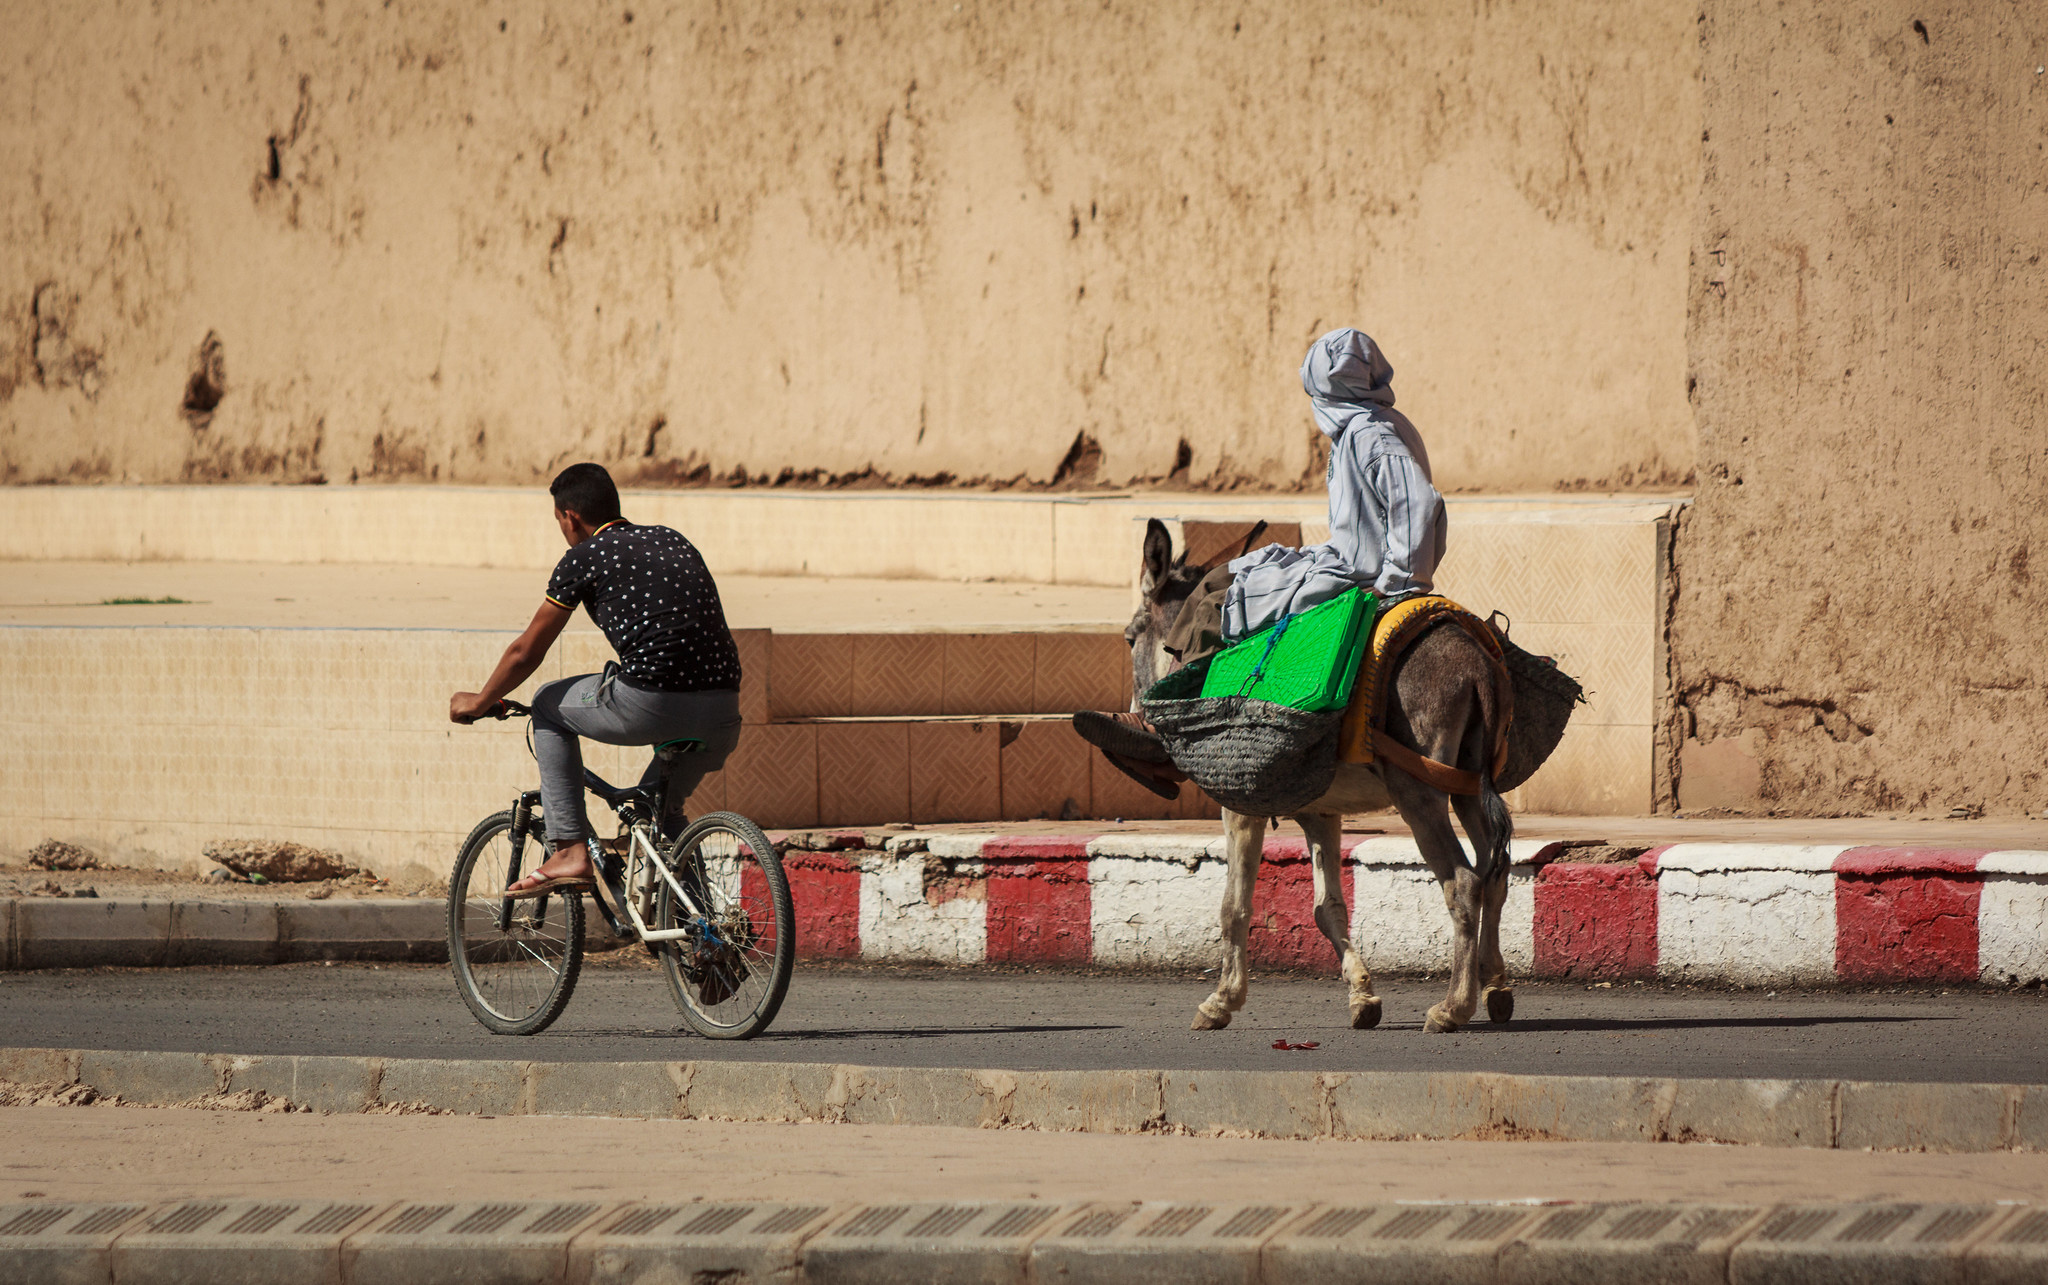 Morocco, Old and New